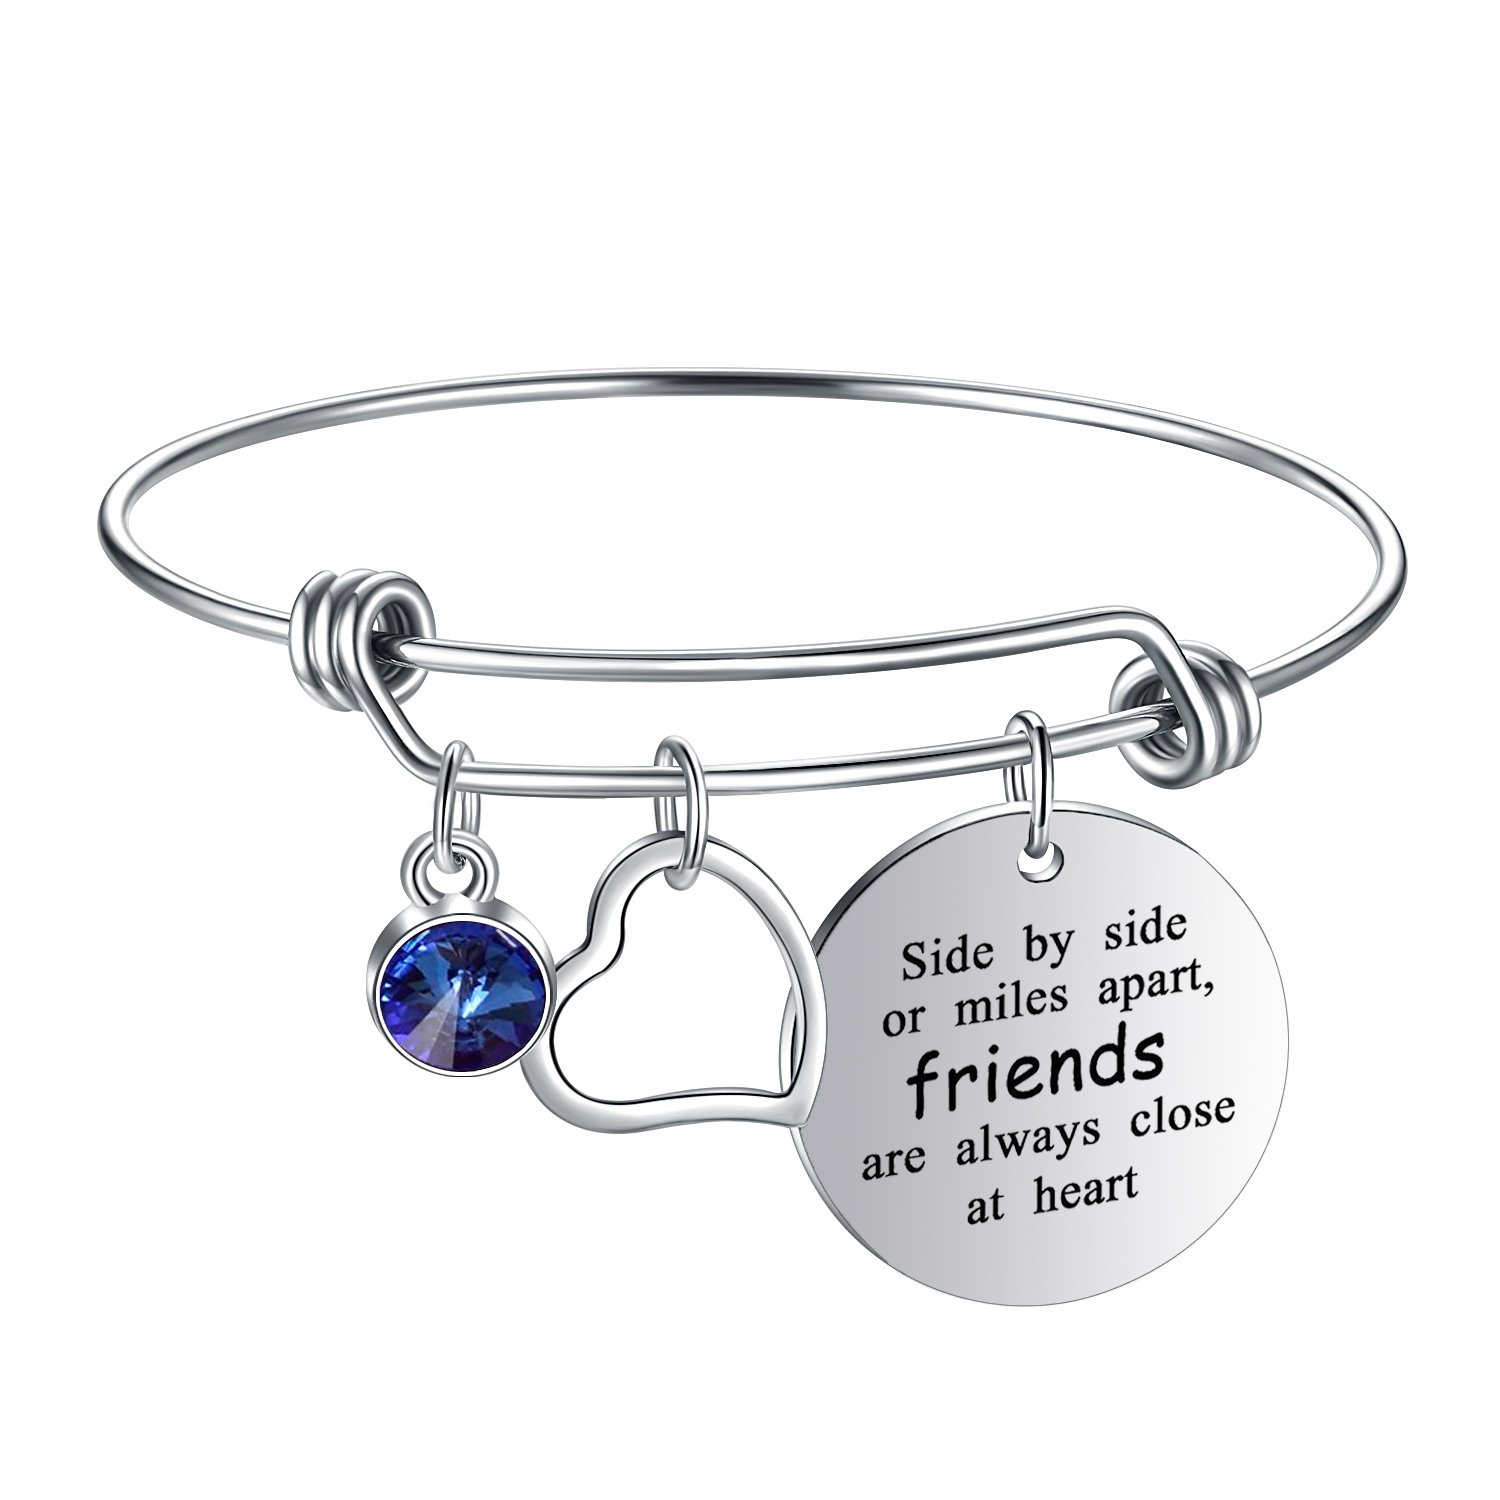 Yoomarket ''Side by side or miles apart Birthstone Adjustable Charm Bangle Bracelet Stainless Steel Women Jewelry Birthday Girls Gifts (09-Sept.-Sapphire)